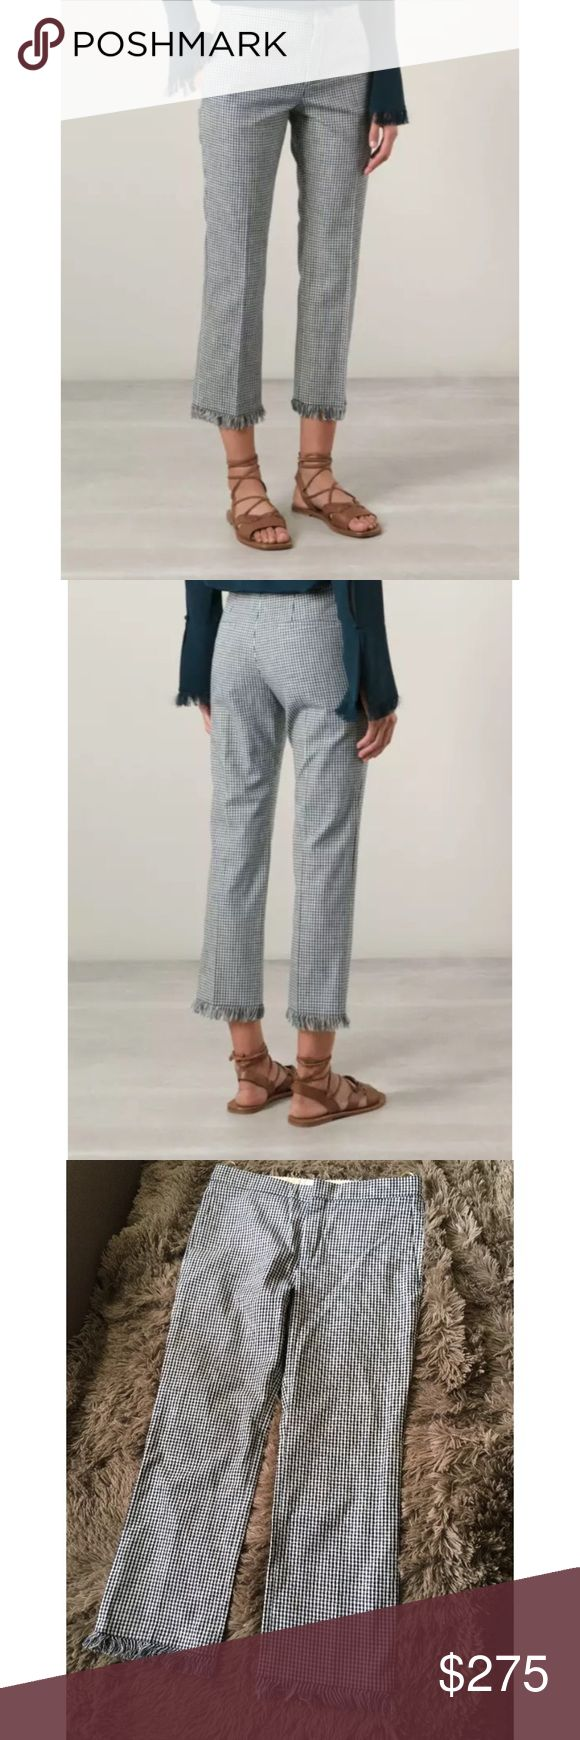 CHLOE Spring 2015 Gingham Frayed Crop Trouser CHLOE Spring 2015 Gingham Frayed Crop Trouser  Price $1250  Size 36/ 4 US  Color Navy Cream  gingham check trousers from Chloé featuring a waistband, a concealed fastening, fringed edges, two inset pockets to the sides and rear welt pockets.  Made in Italy Cotton 100% Dry Clean Waist: 16 Hip: 18.5 Inseam 24 Front Rise:10.5 PRE-OWNED: Gently used. There are 2 spots (one on front hip, another on back near calf).  Not sure if they can be dry cleaned…